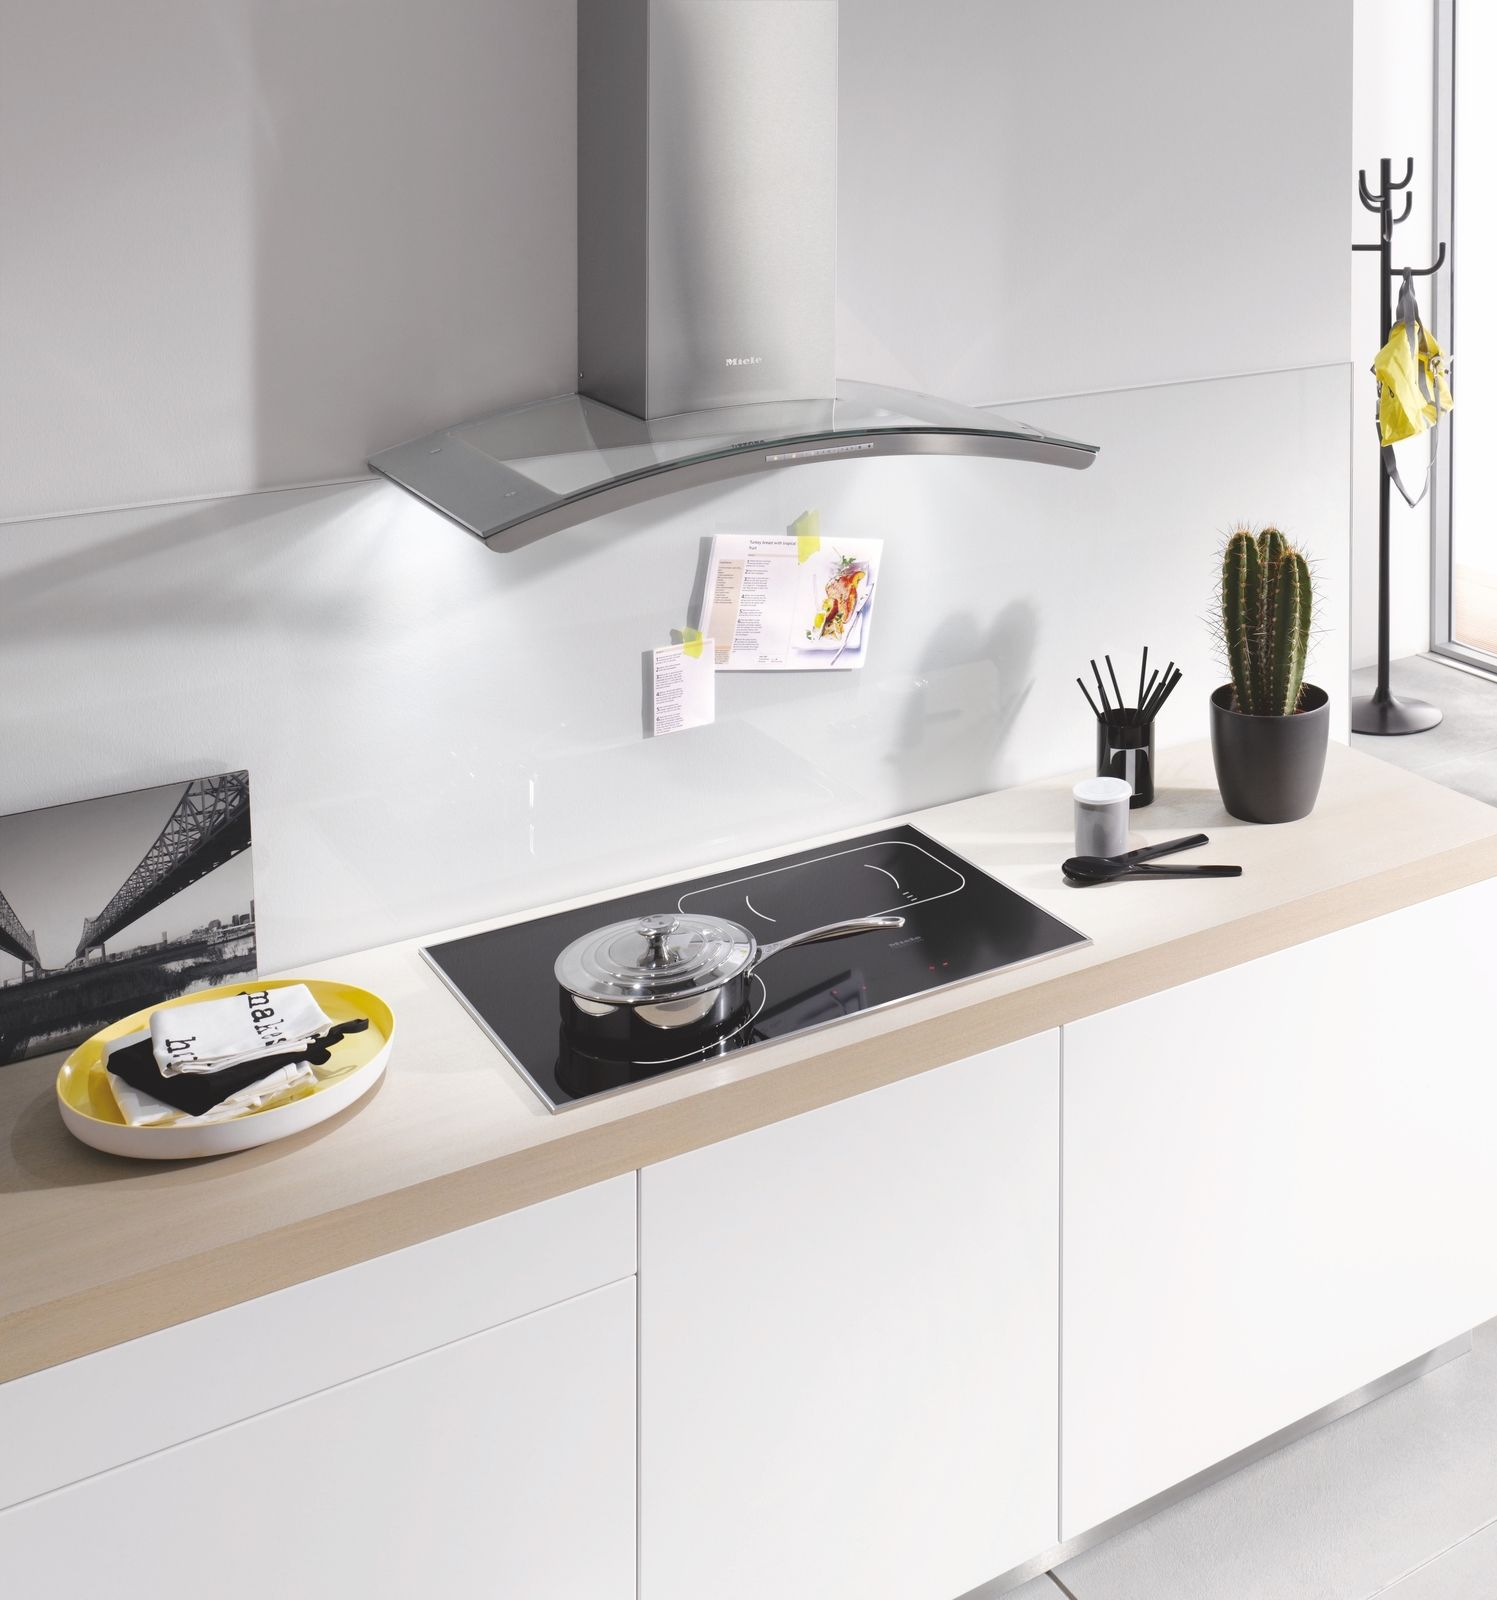 """Pin on Induction cooktop 36"""""""